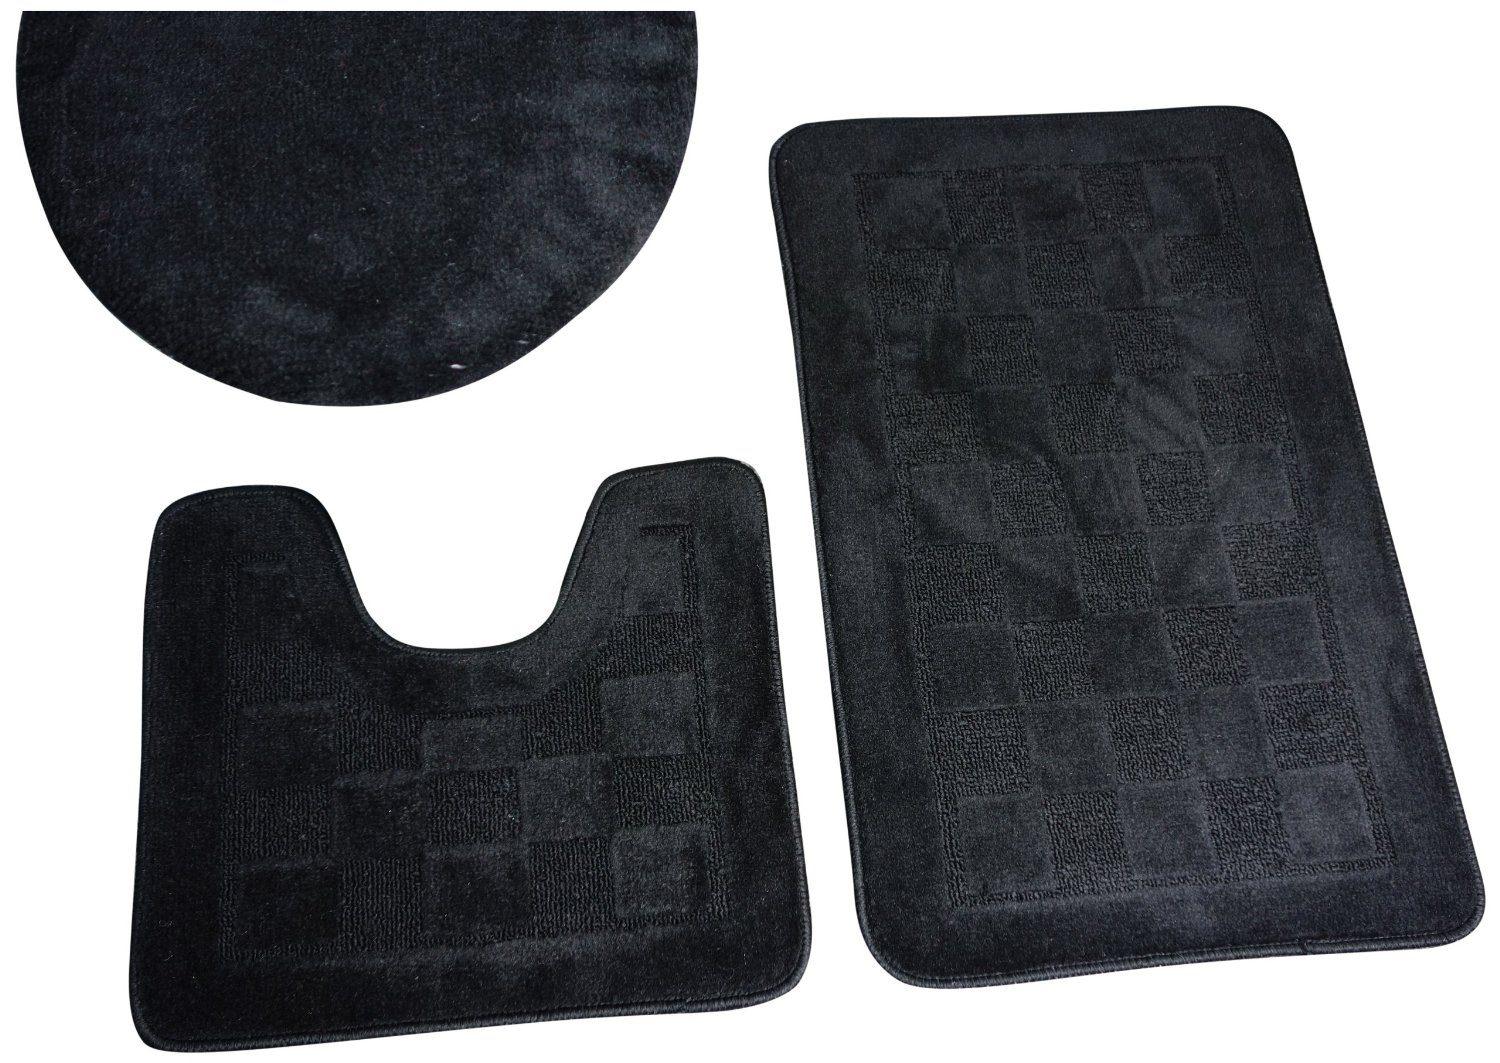 Permalink to Black 3 Piece Bathroom Rug Set